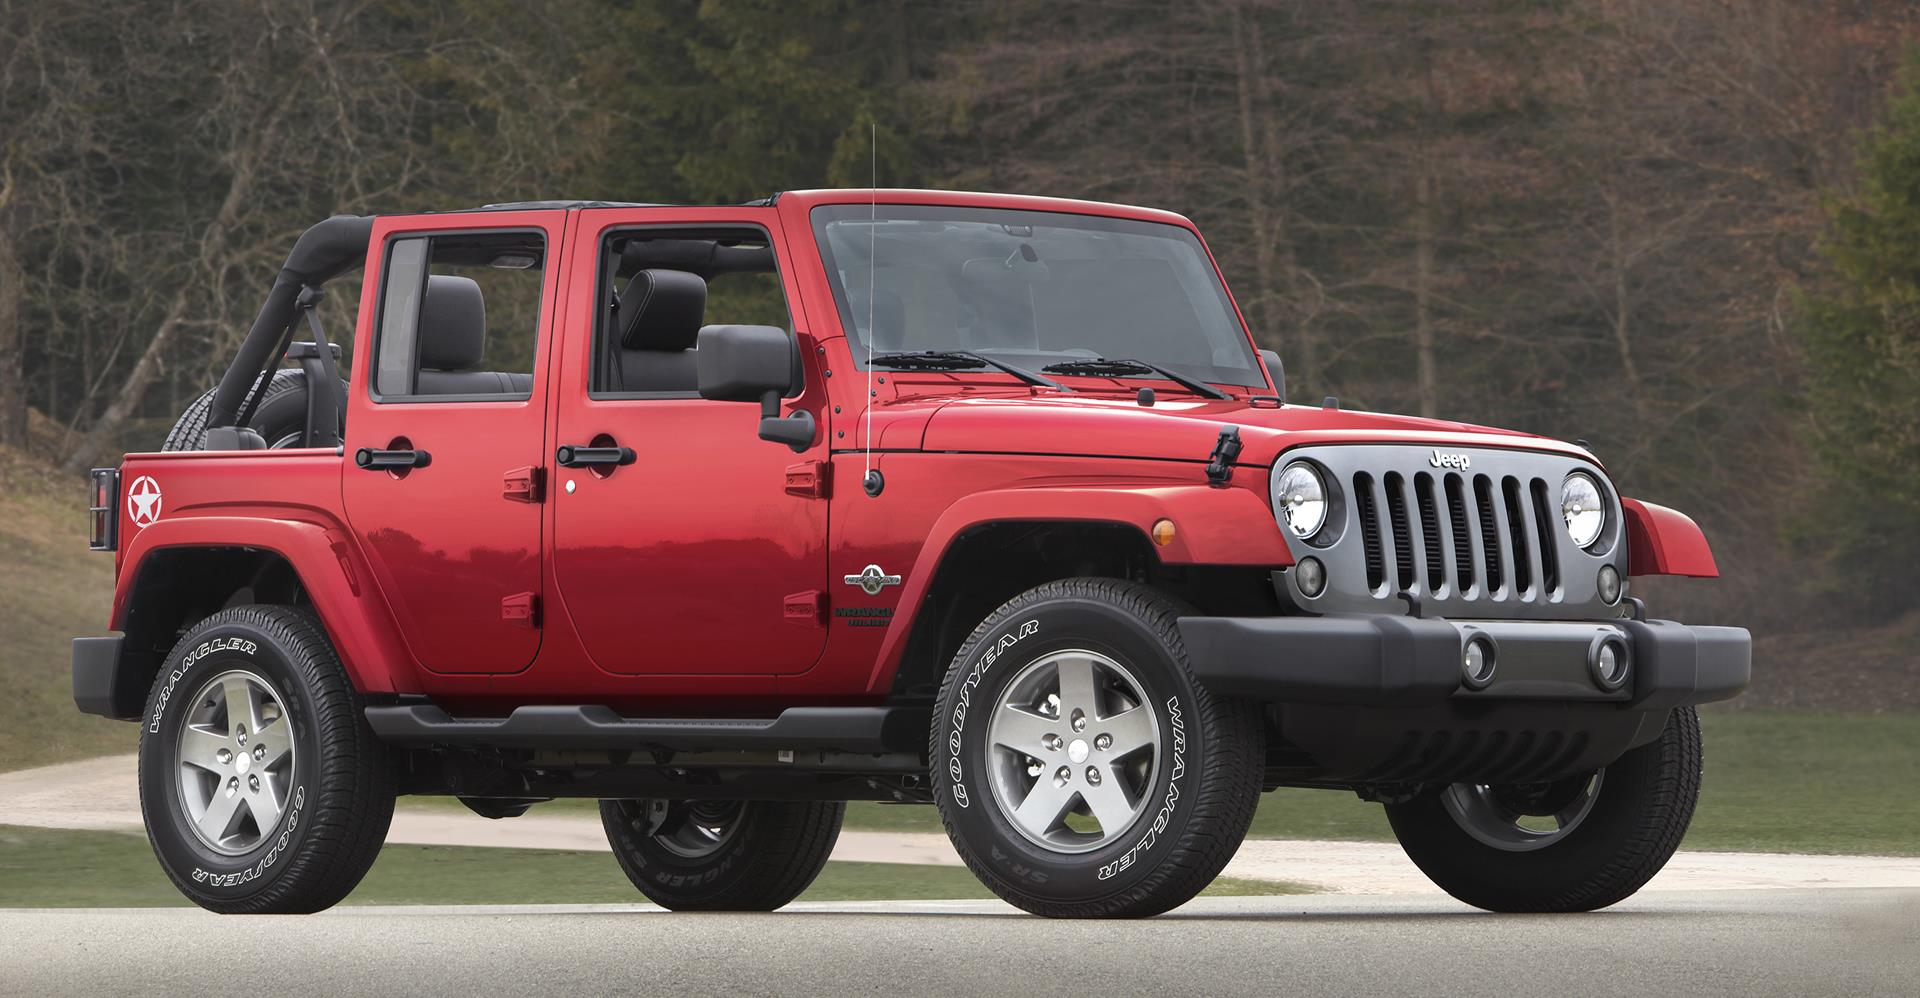 2015 Jeep Wrangler Unlimited News and Information